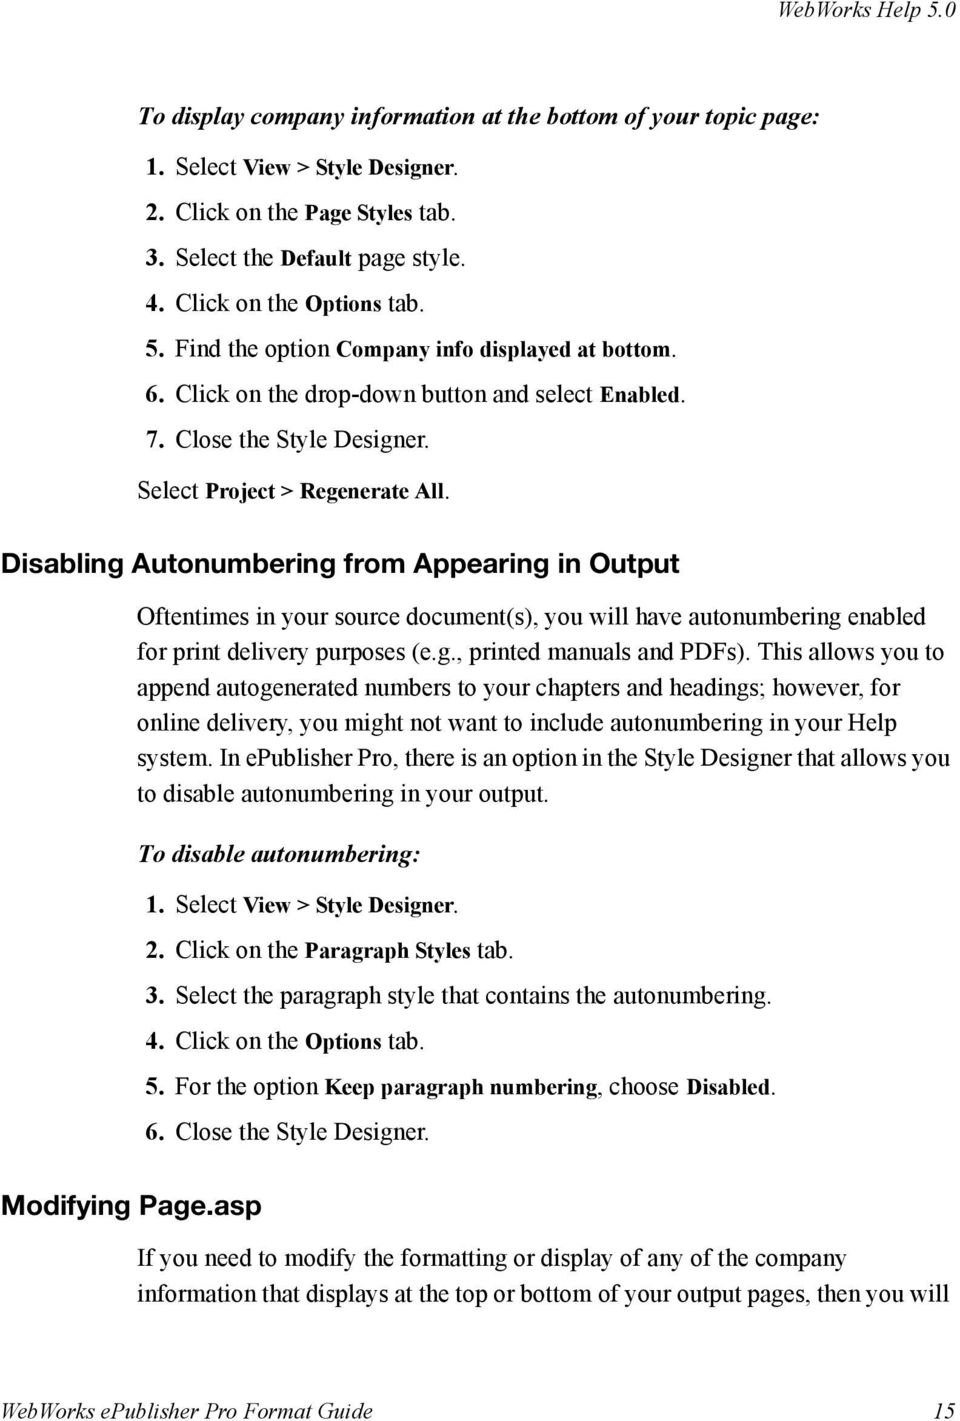 Disabling Autonumbering from Appearing in Output Oftentimes in your source document(s), you will have autonumbering enabled for print delivery purposes (e.g., printed manuals and PDFs).